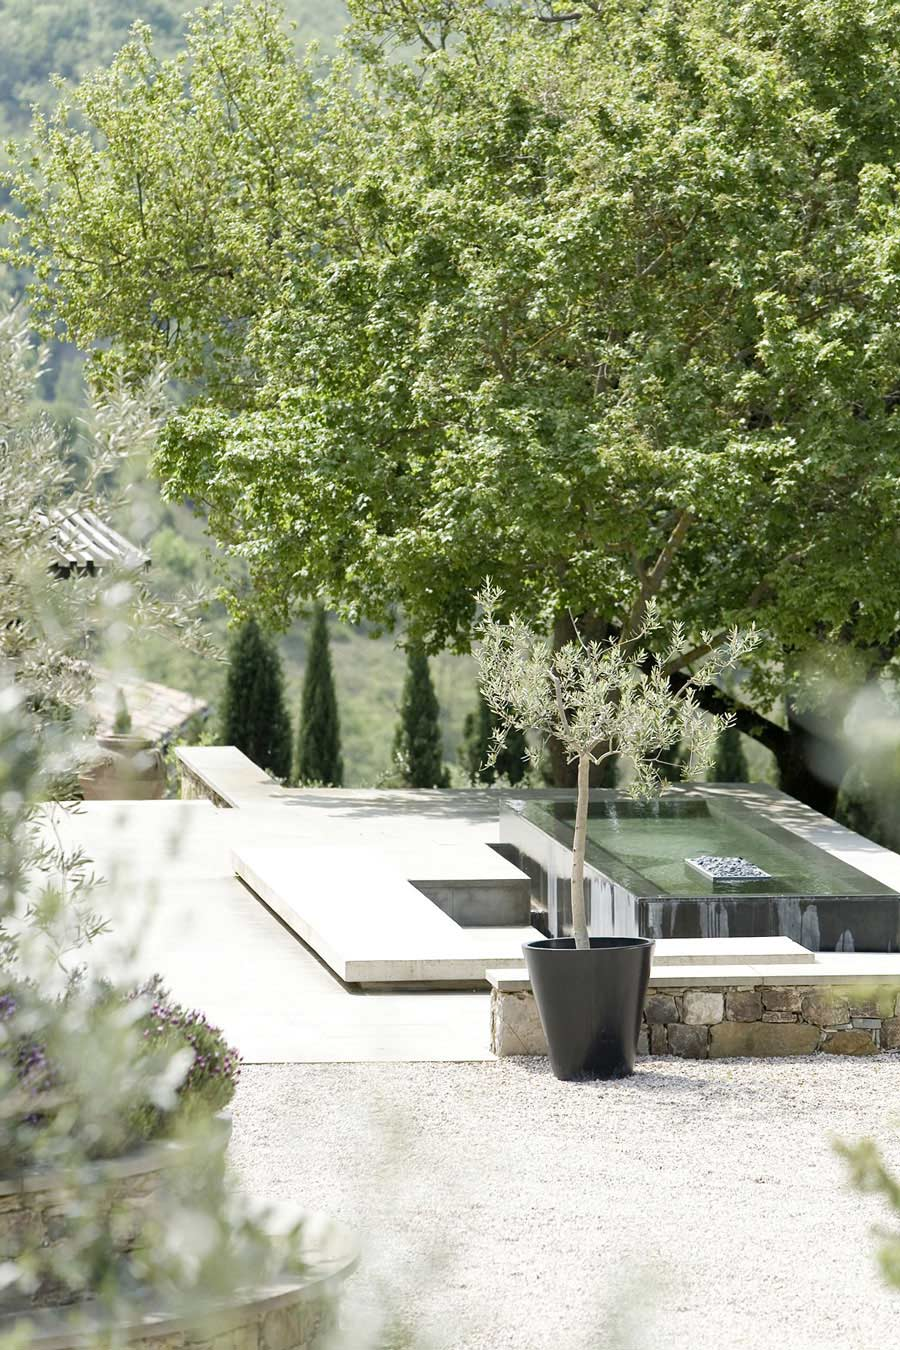 Water & Fire Feature, Torre Moravola Boutique Hotel in Montone, Italy